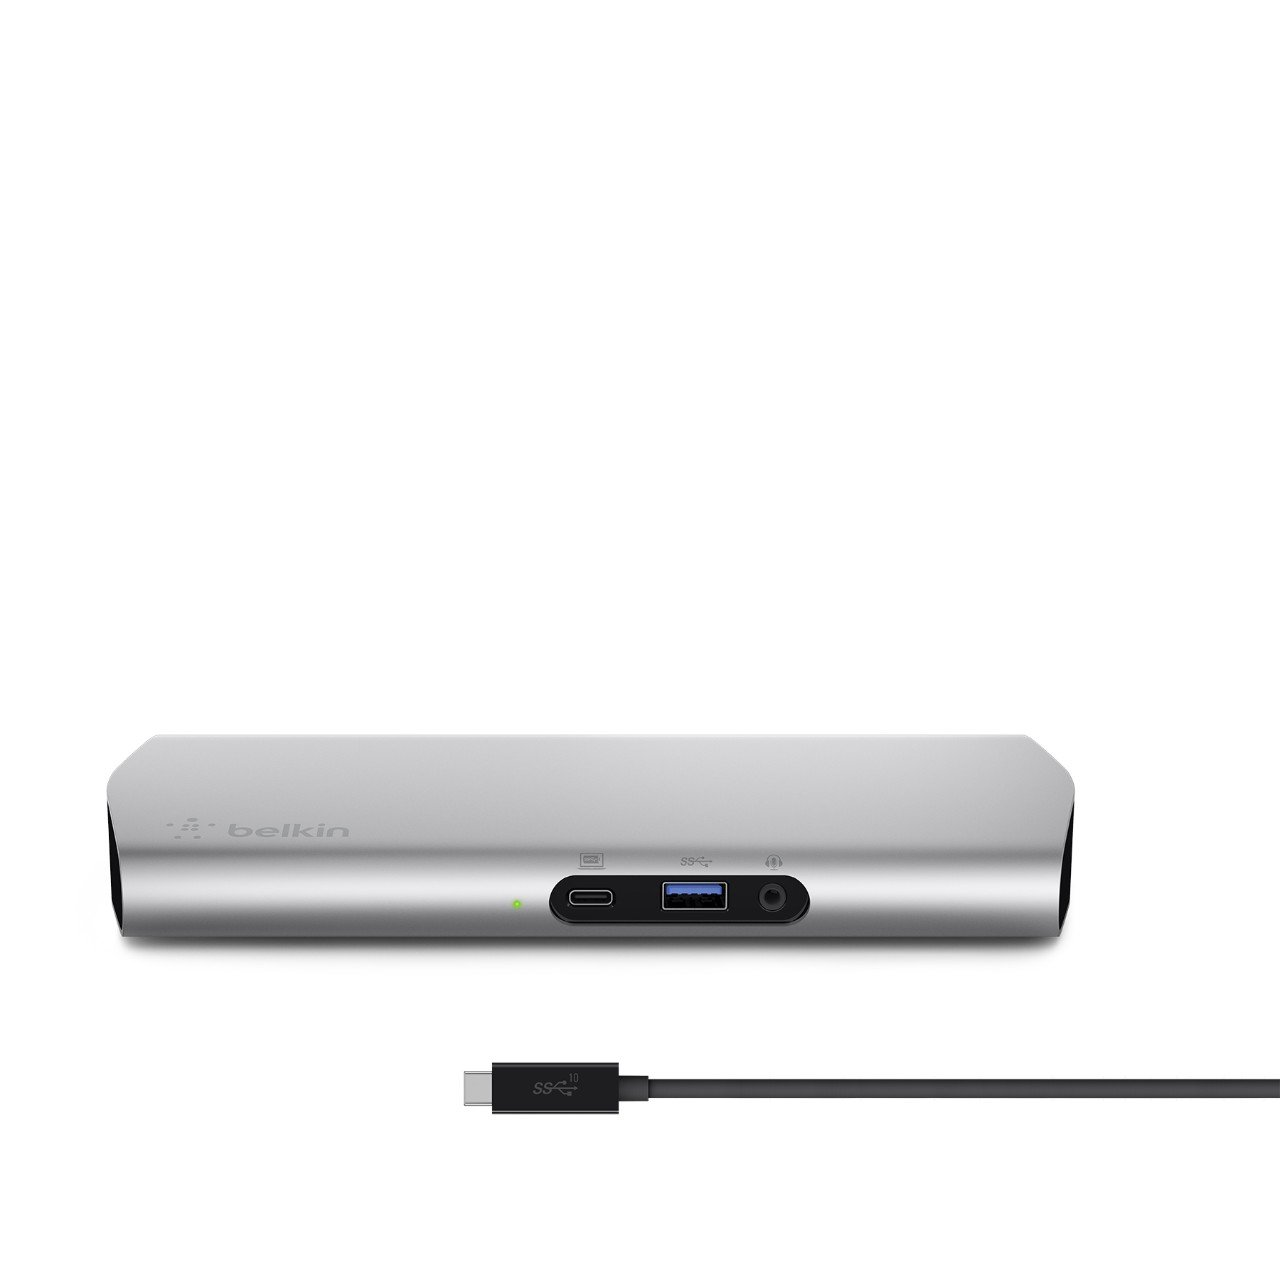 Belkin USB-C 3.1 Express Dock HD with 1-Meter/3.3 Foot USB-C Cable: Compatible with MacBook (Early 2015 or later,) MacBook Pro 13'' (2016 or later,) MacBook Pro 13'' & 15'' w/Touch Bar (2016 or later) by Belkin